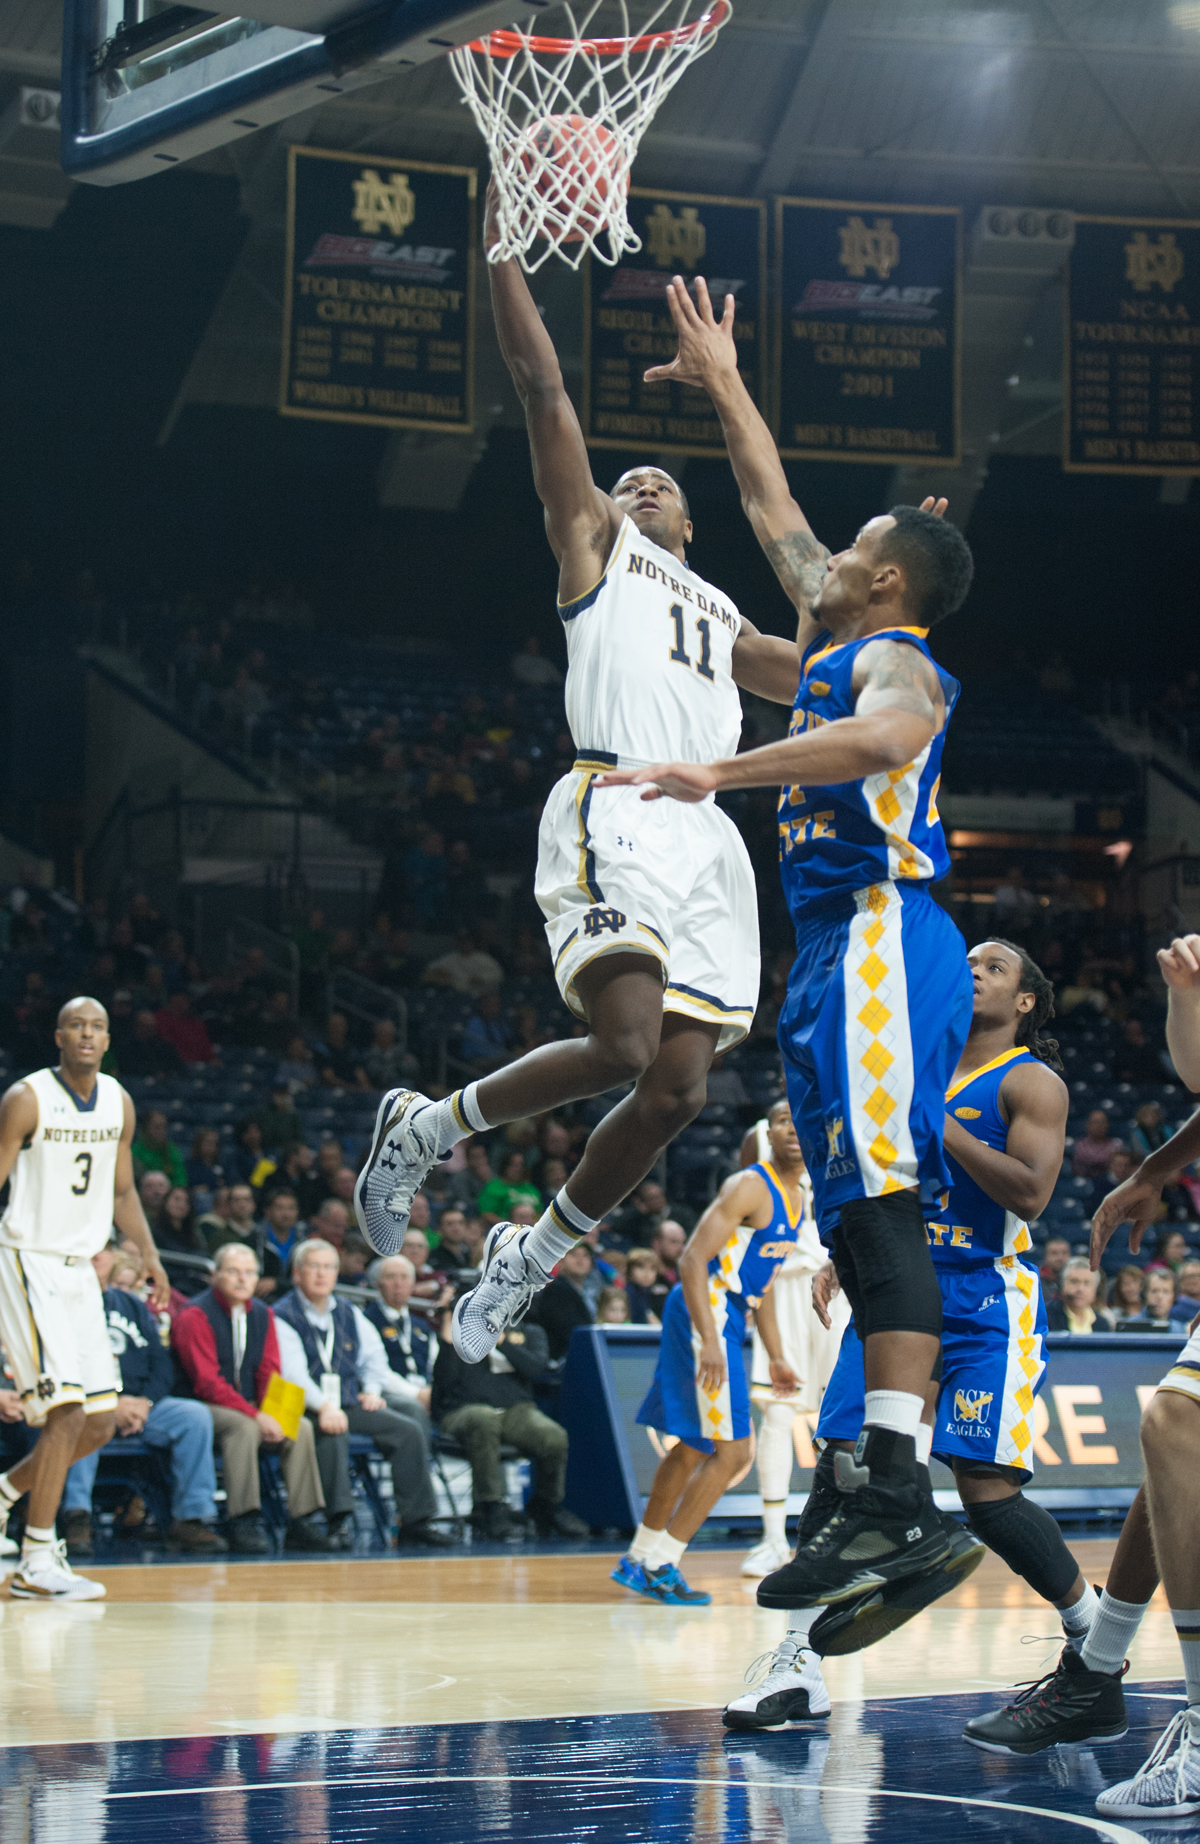 Irish sophomore guard Demetrius Jackson goes up for a score in Notre Dame's 104-67 win over Coppin State on Nov. 19 at Purcell Pavilion.